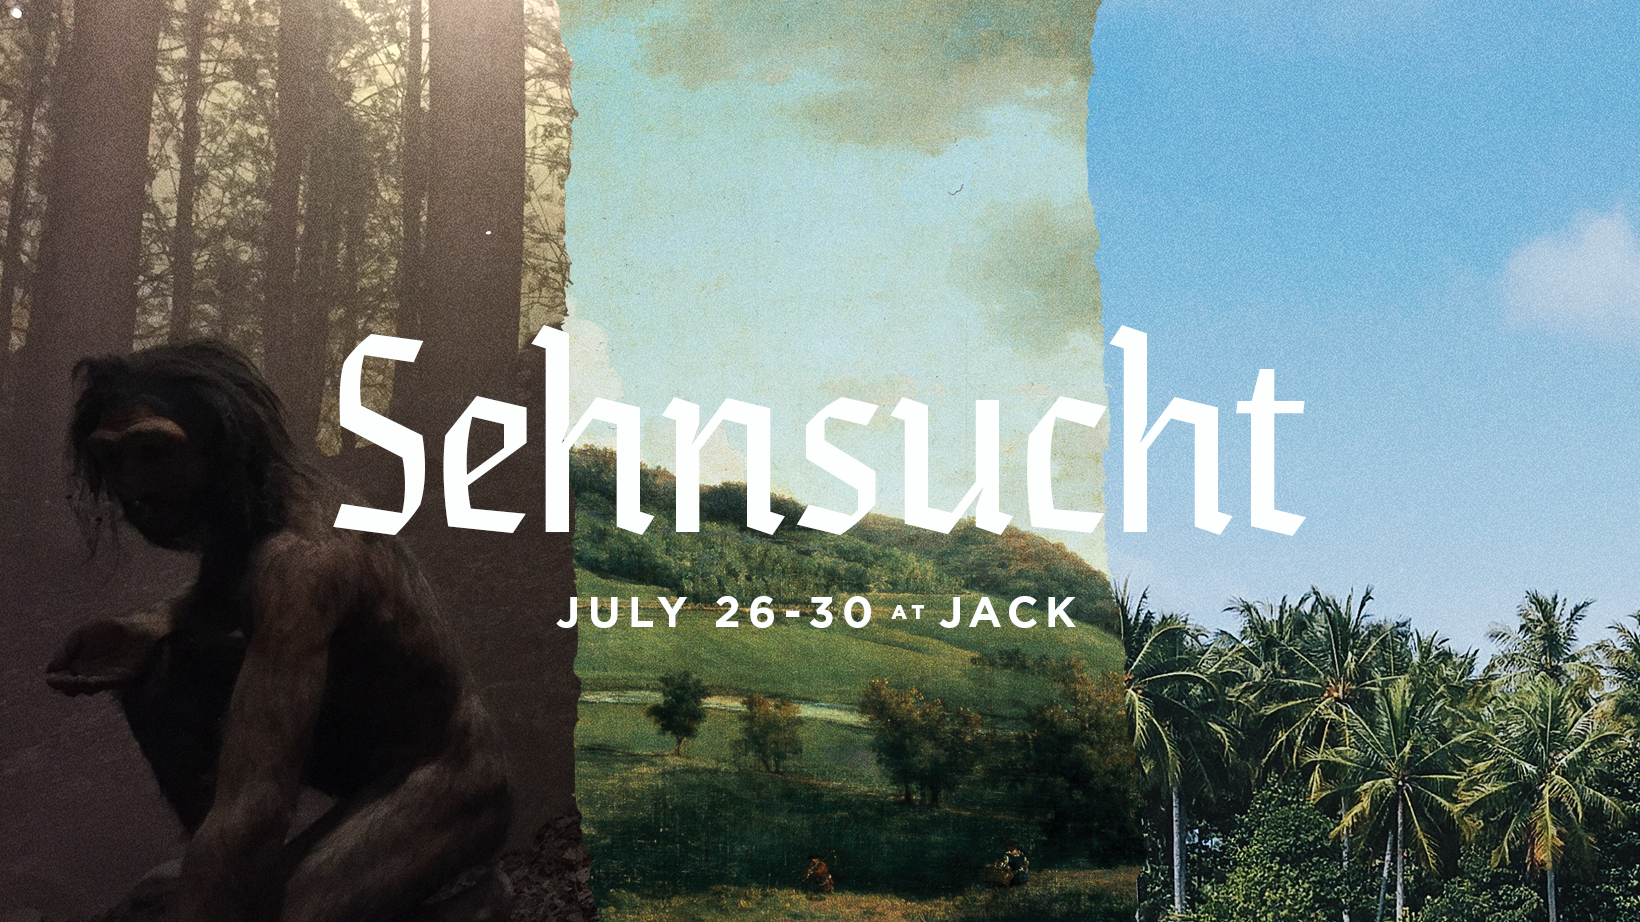 SEHNSUCHT | JACK - PREVIOUSLY: THE HABITAT DIRECTOR'S PLAYGROUNDTHE NEW YORK SOCIETY LIBRARY